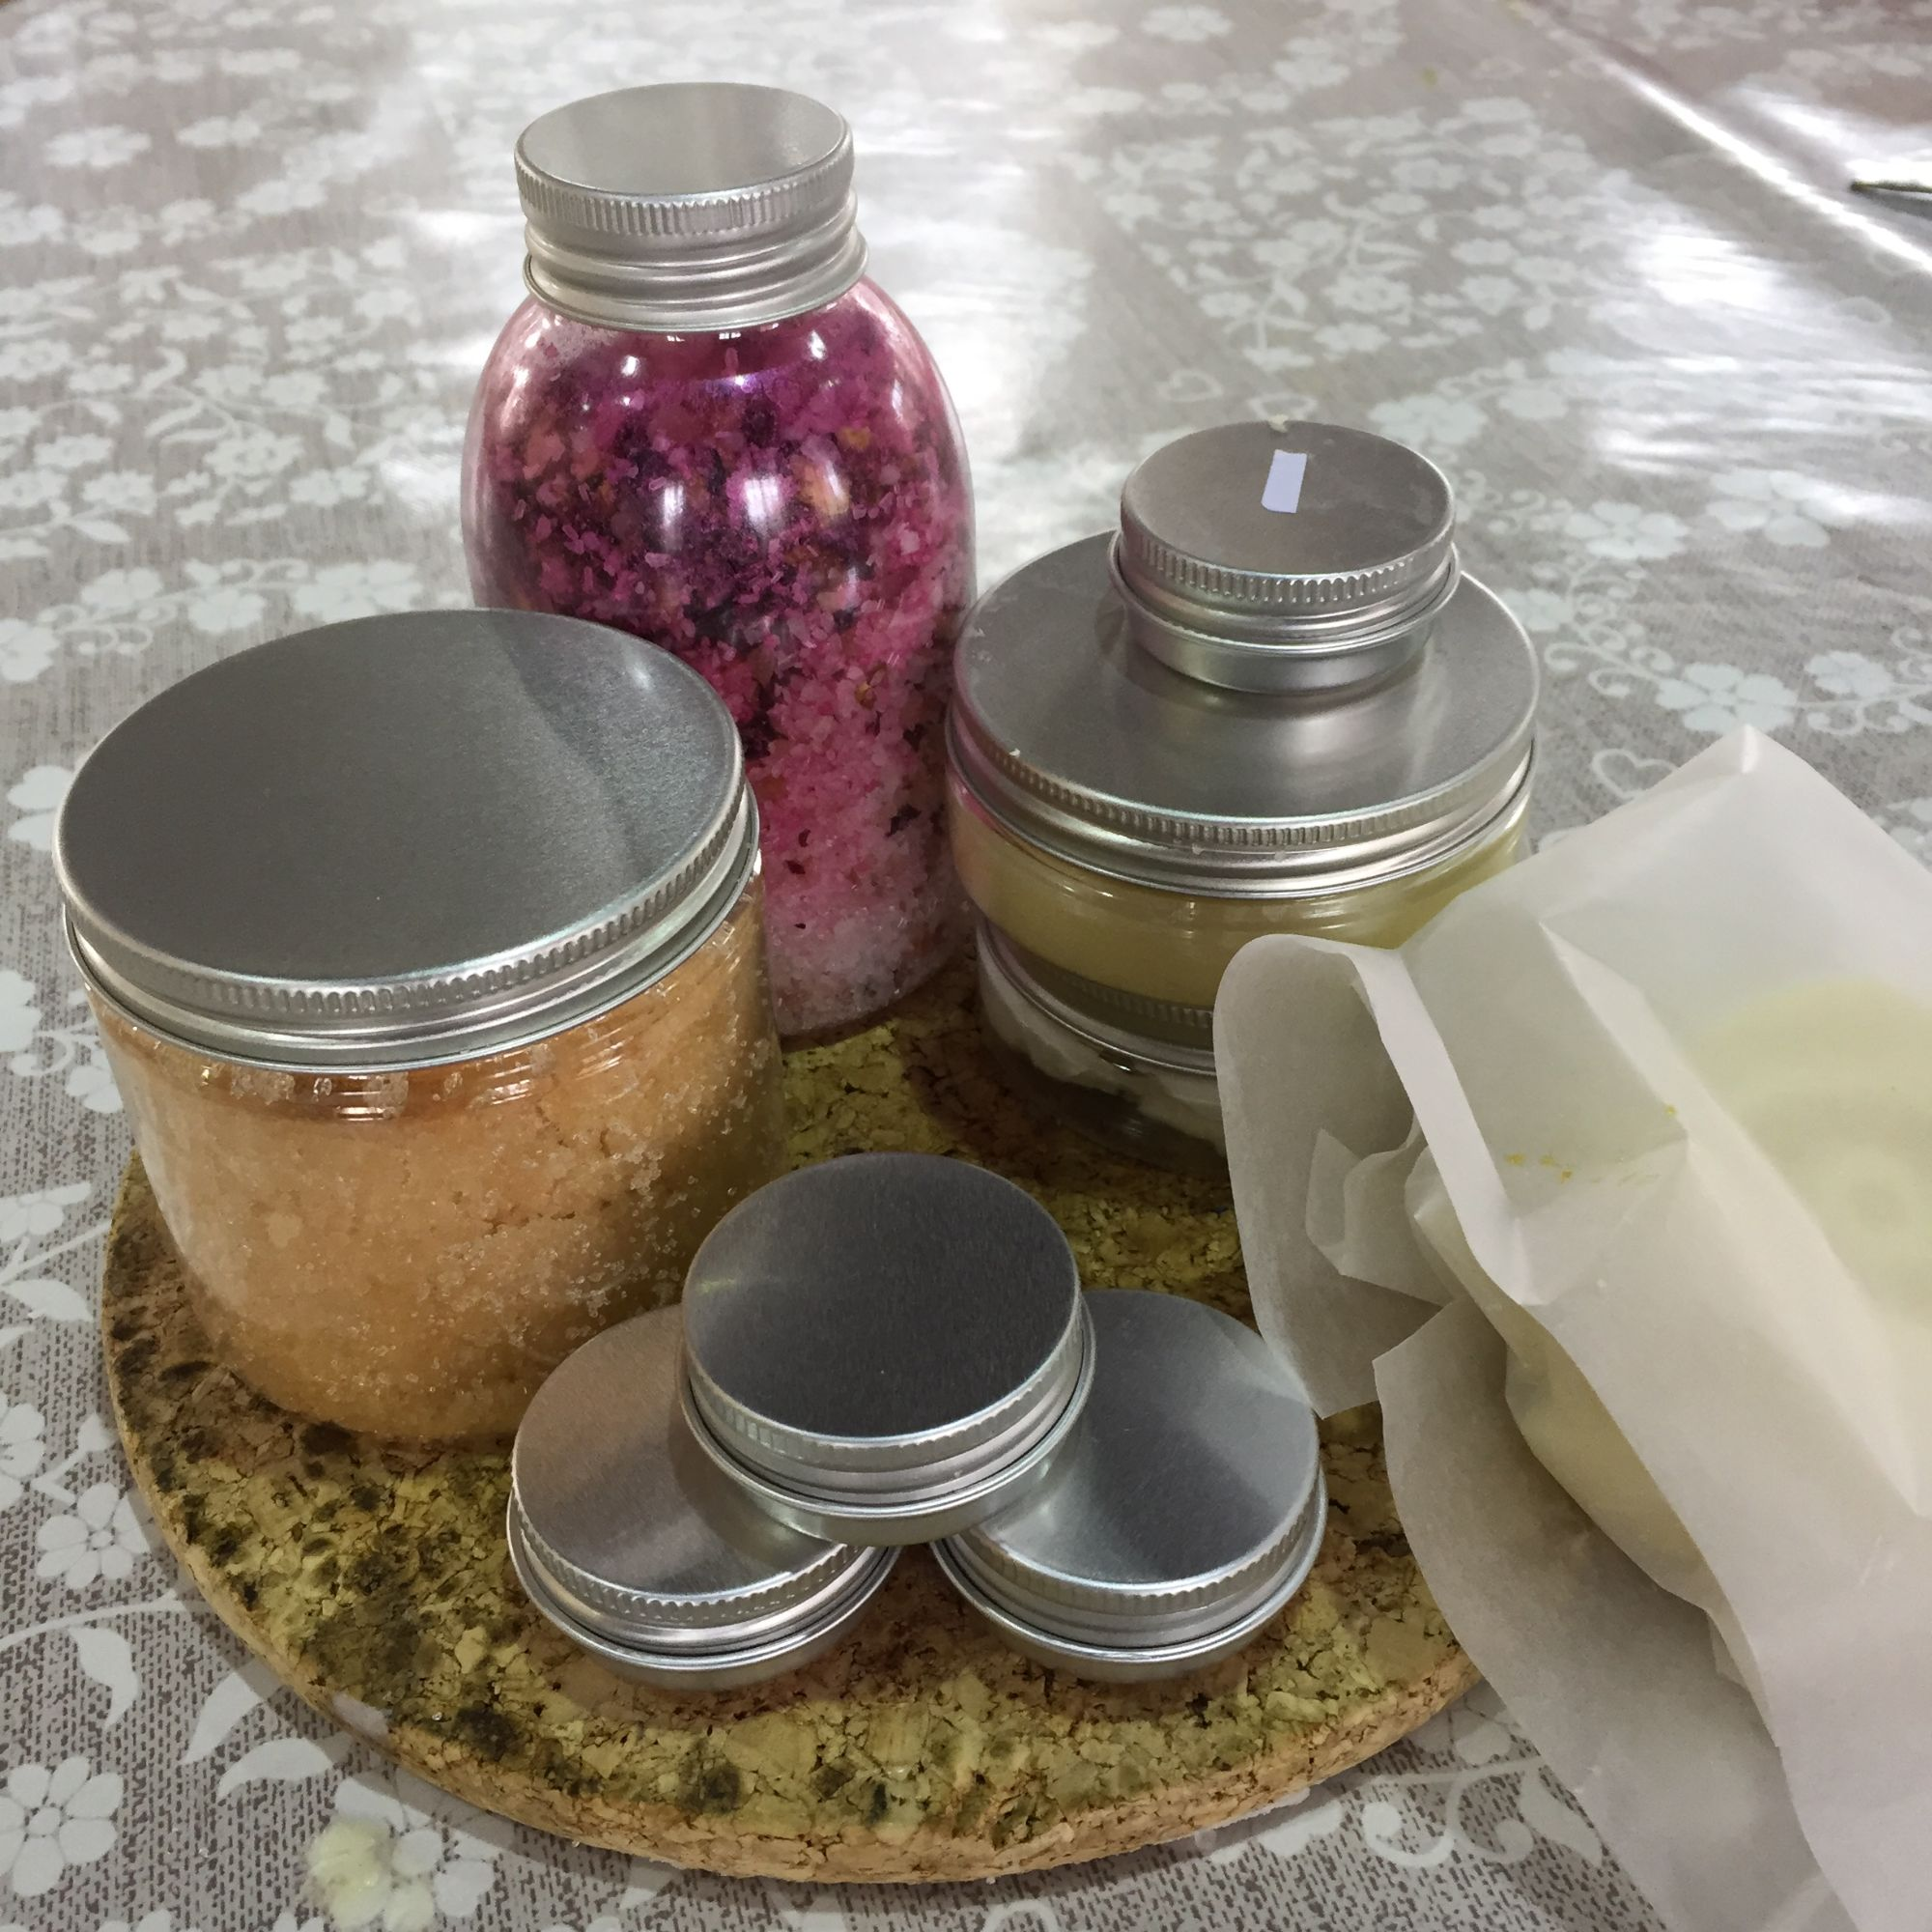 Salves, Soaks and Scubs Workshop - The Results